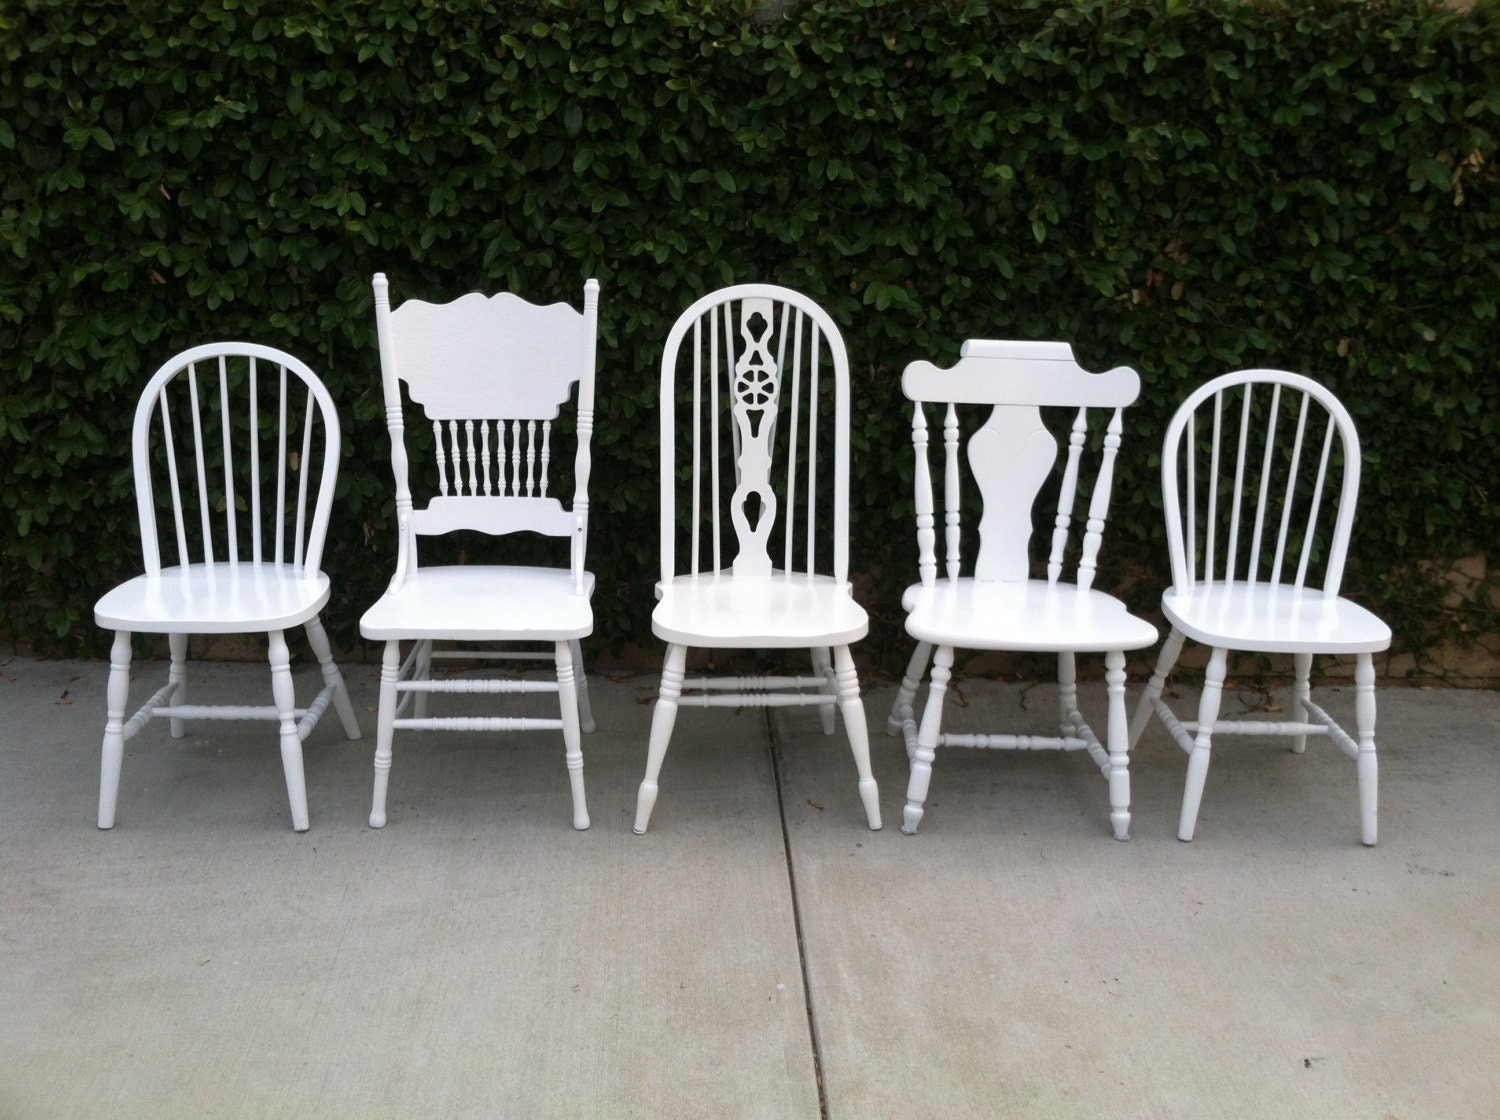 Farmhouse kitchen chairs set of 5 dining chairs by for Kitchen chairs